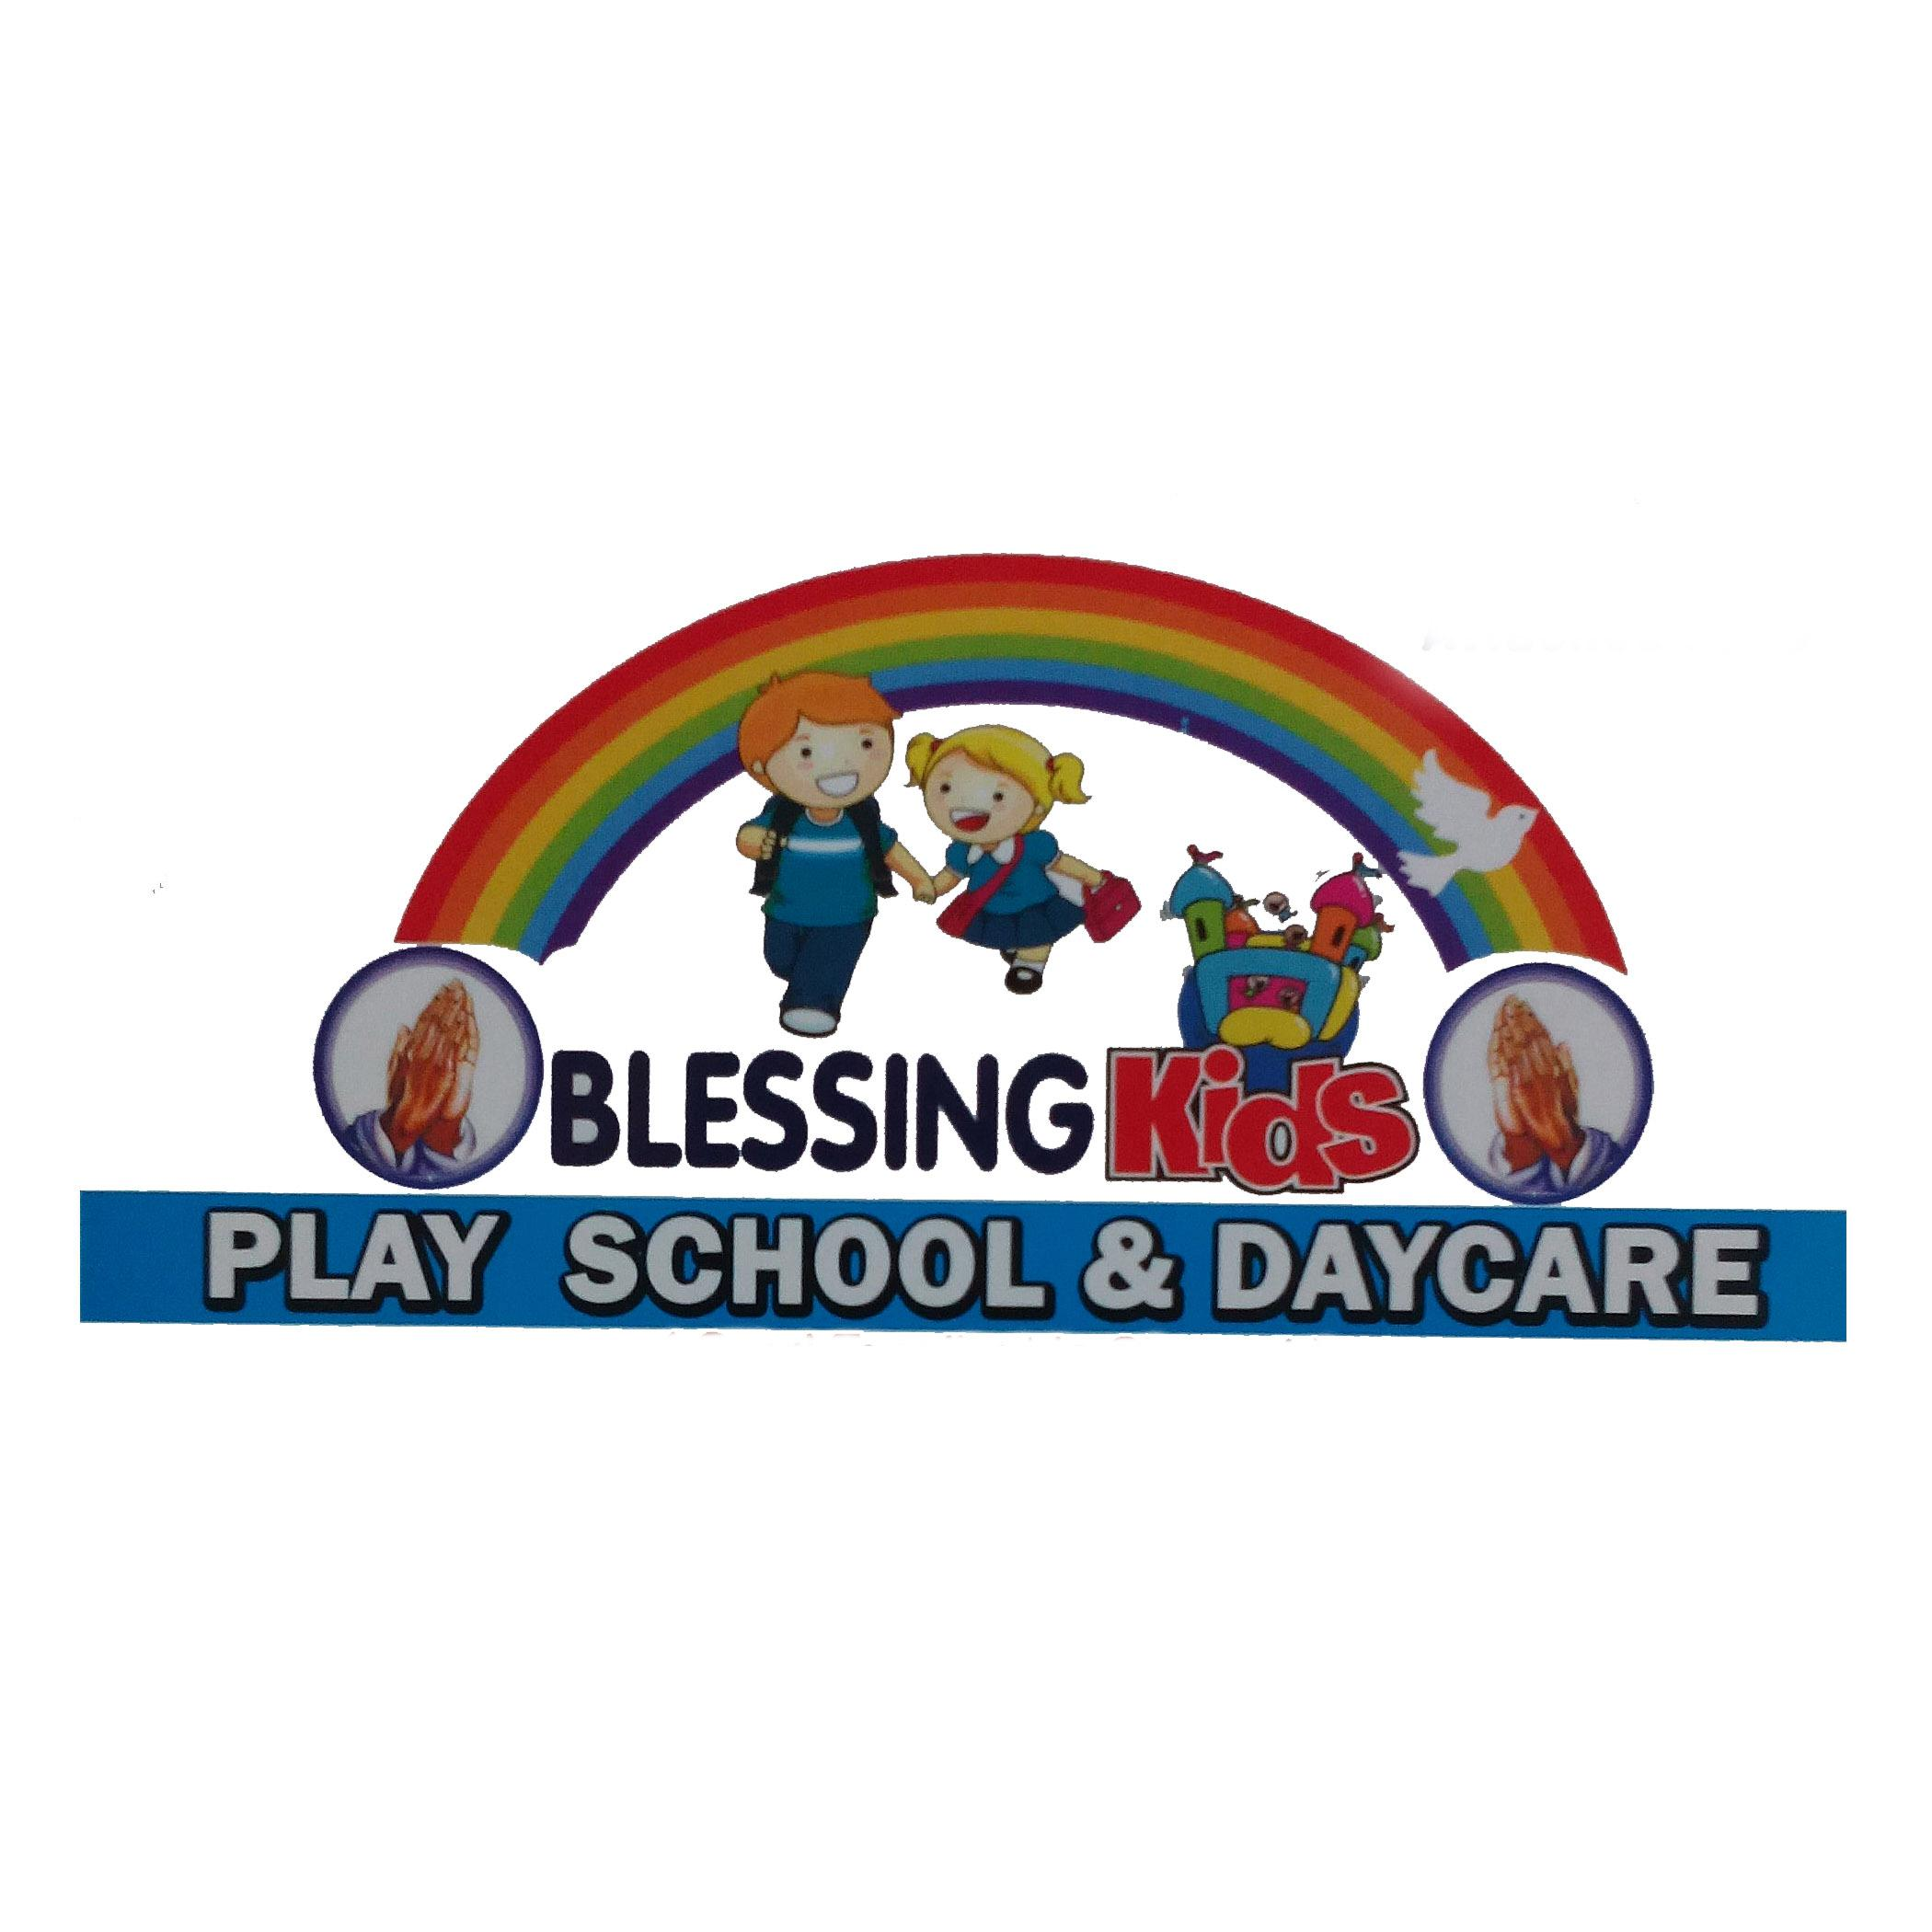 Blessings Kids Play School & Day Care, Blessings Kids Play School & Day Care